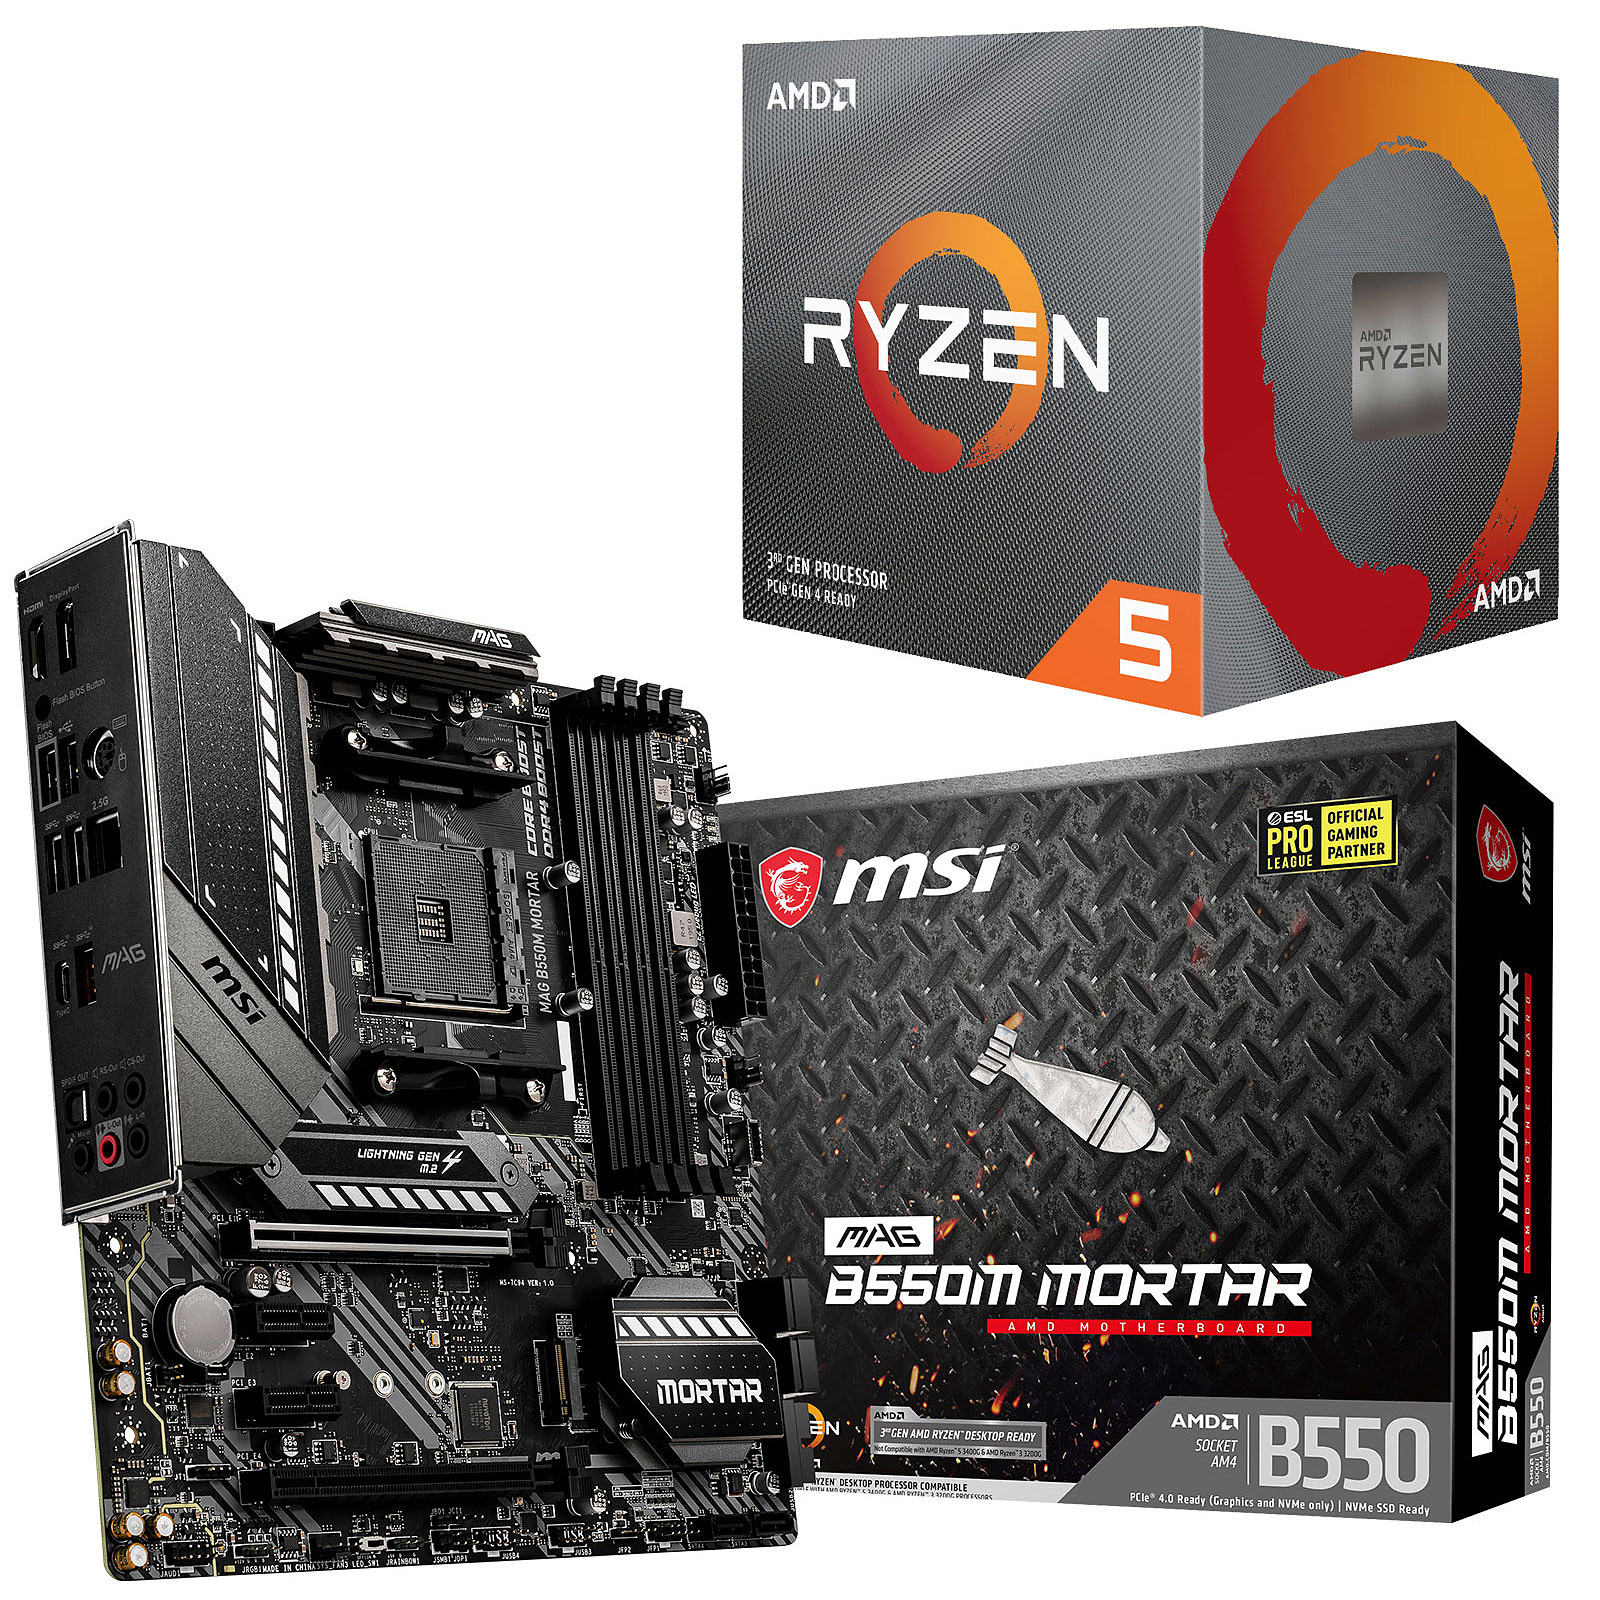 Kit Upgrade PC AMD Ryzen 5 3600 MSI MAG B550M MORTAR